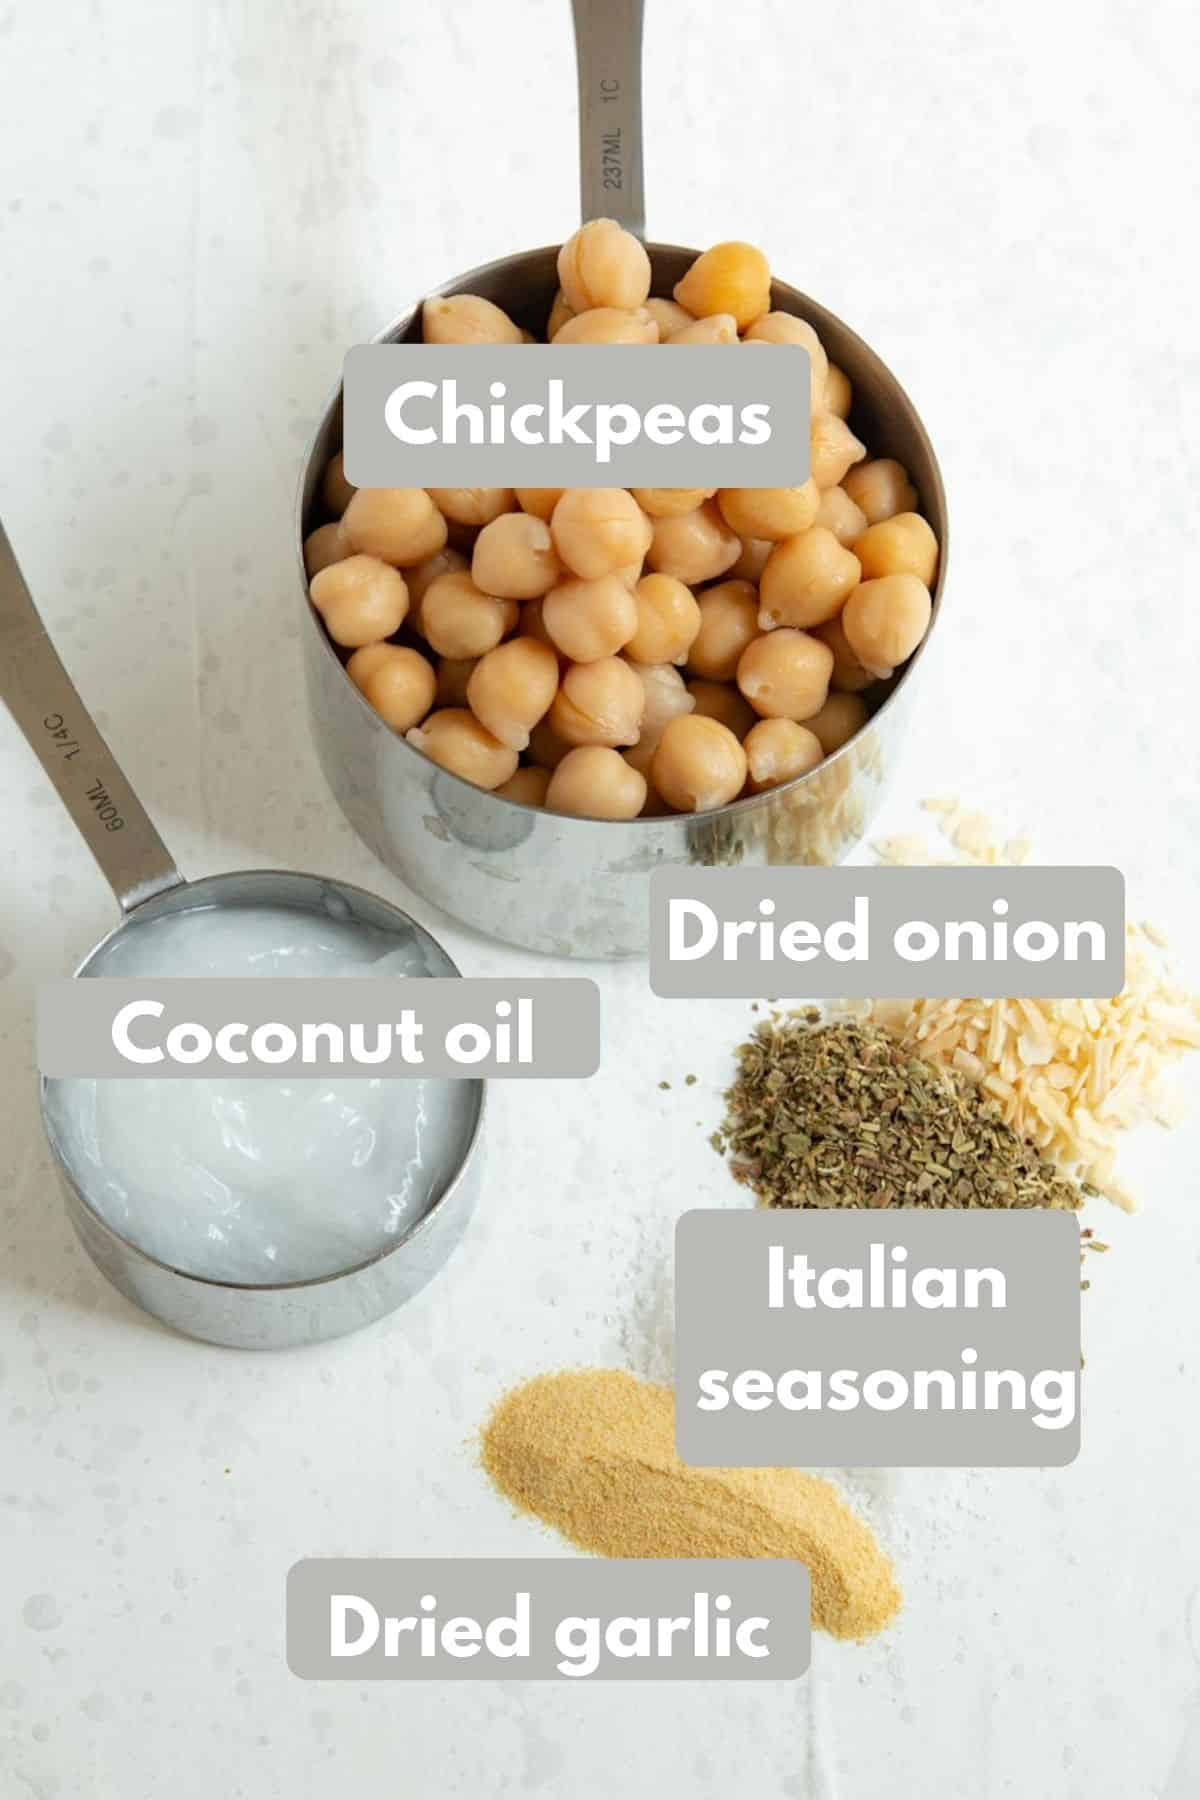 ingredients for roasted chickpeas